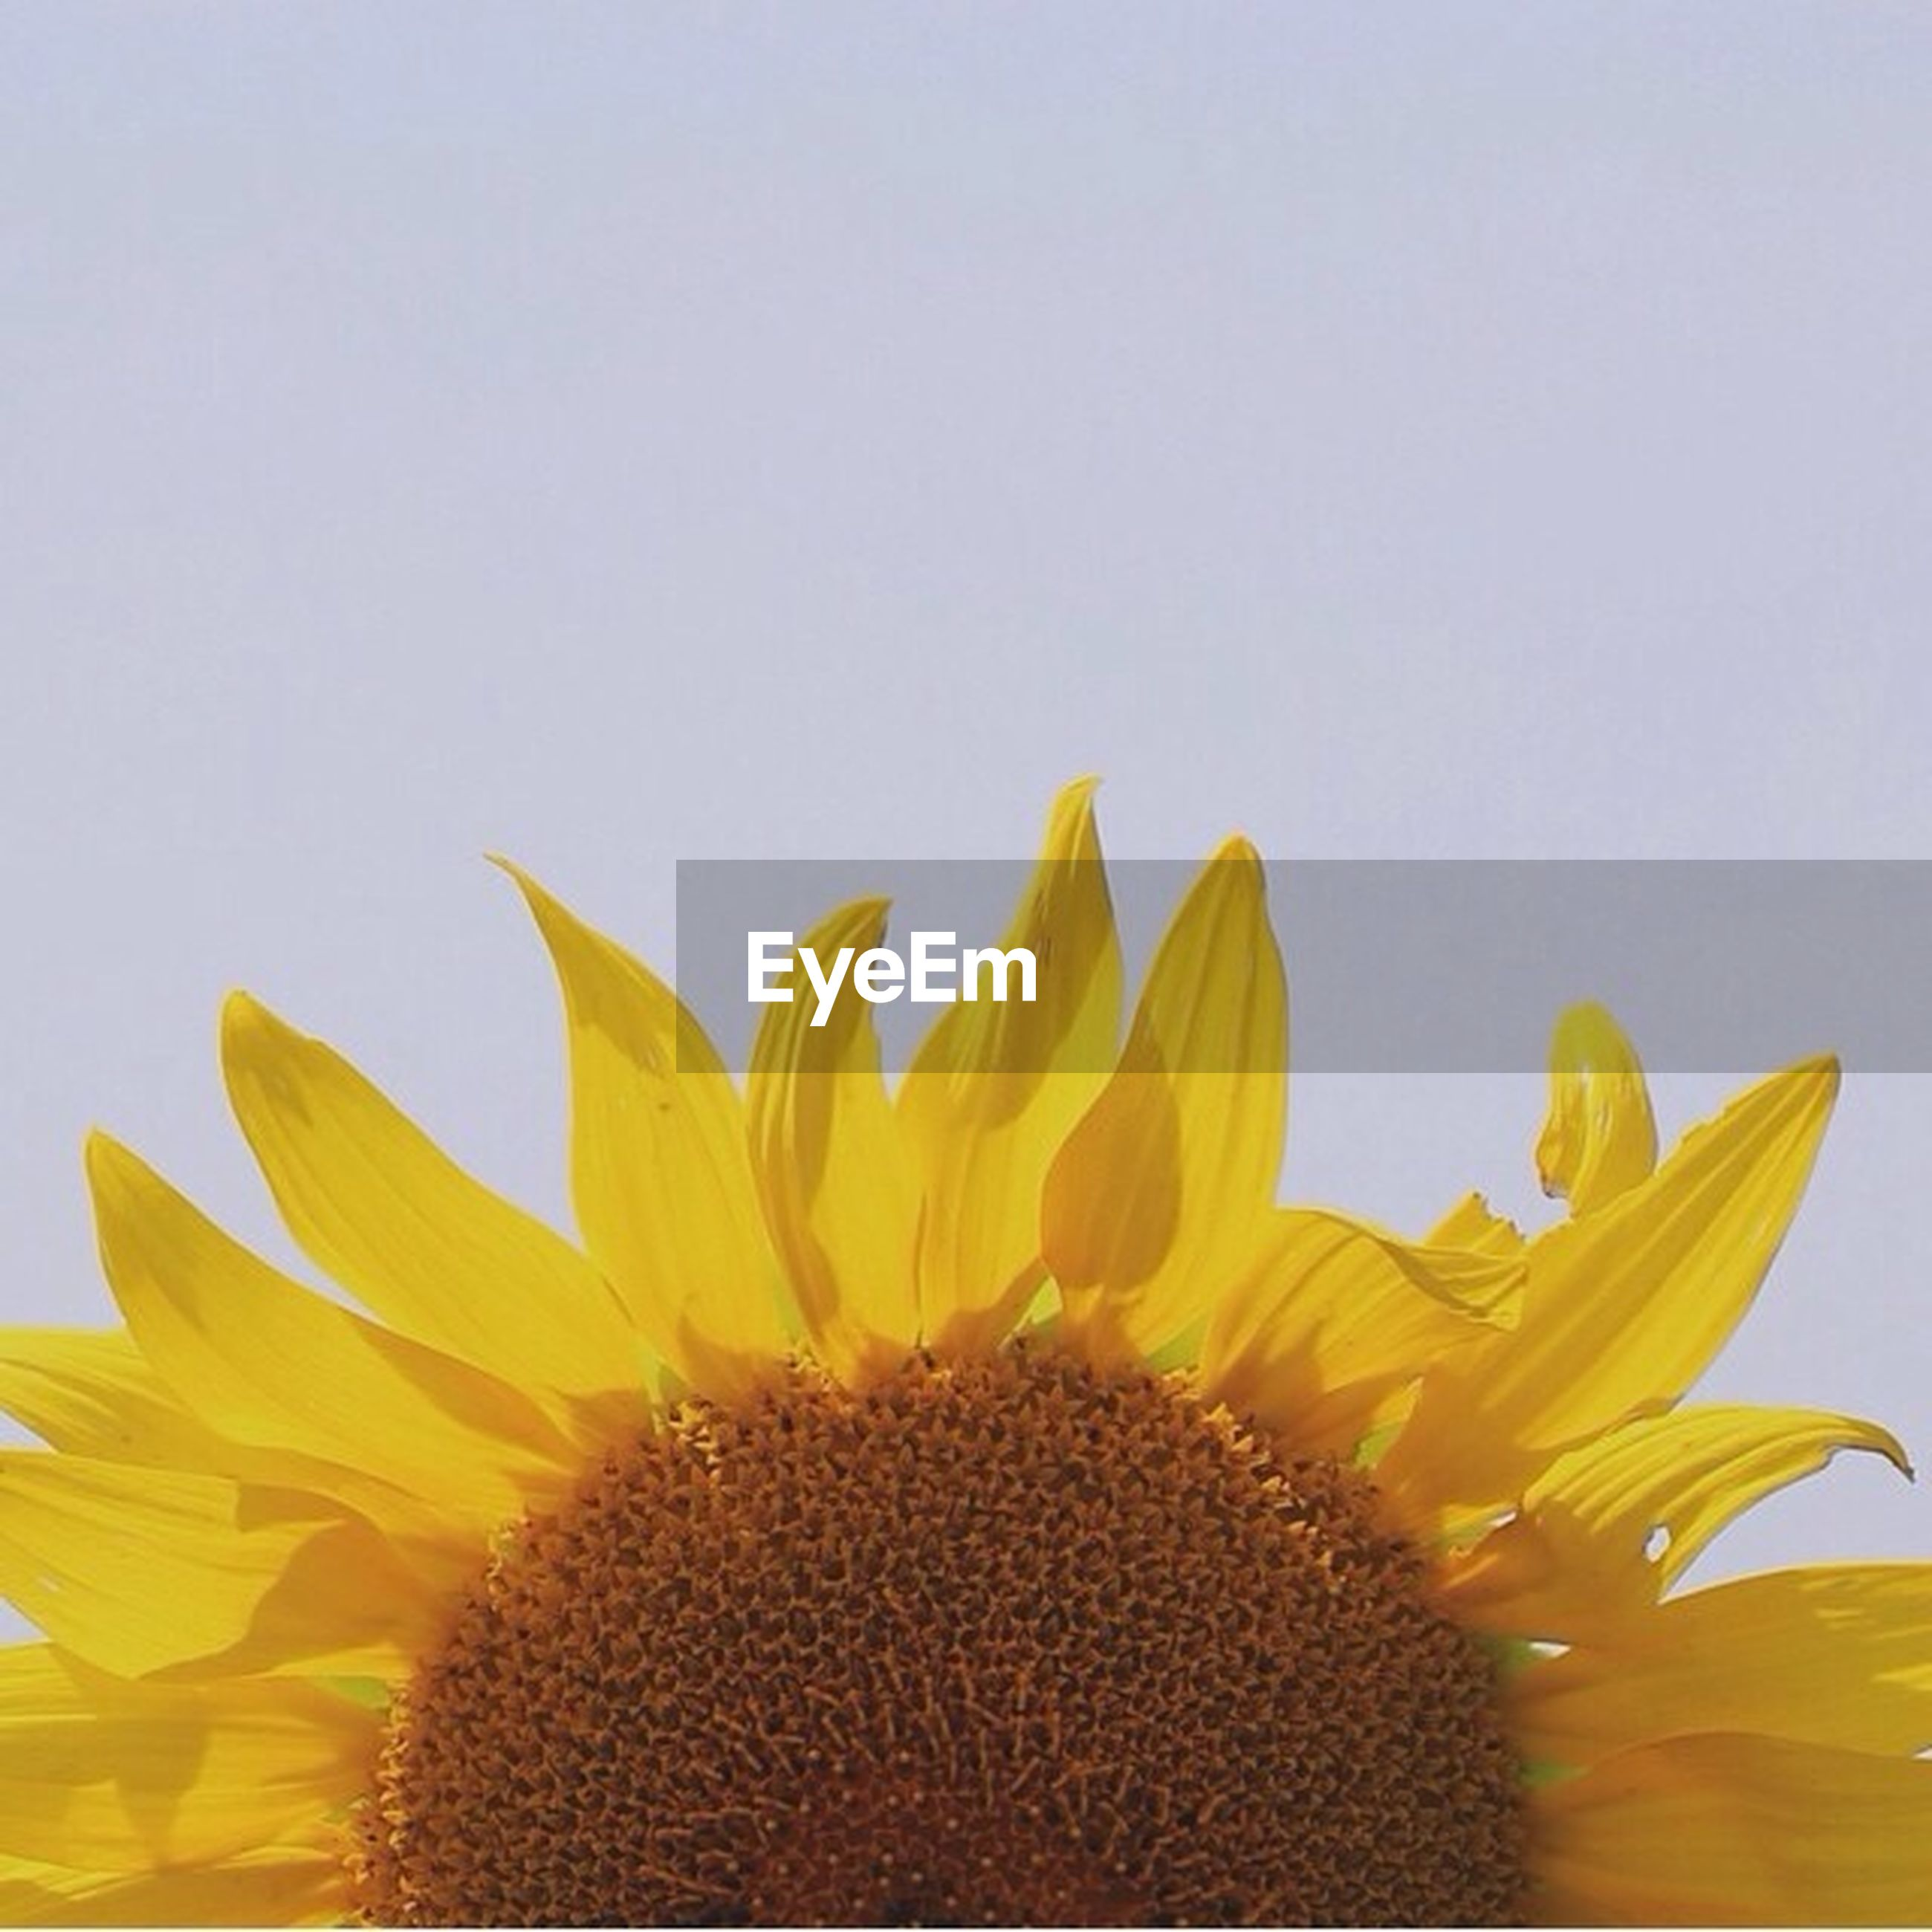 flower, yellow, freshness, petal, flower head, sunflower, fragility, beauty in nature, growth, pollen, clear sky, close-up, copy space, nature, single flower, blooming, plant, white background, low angle view, studio shot